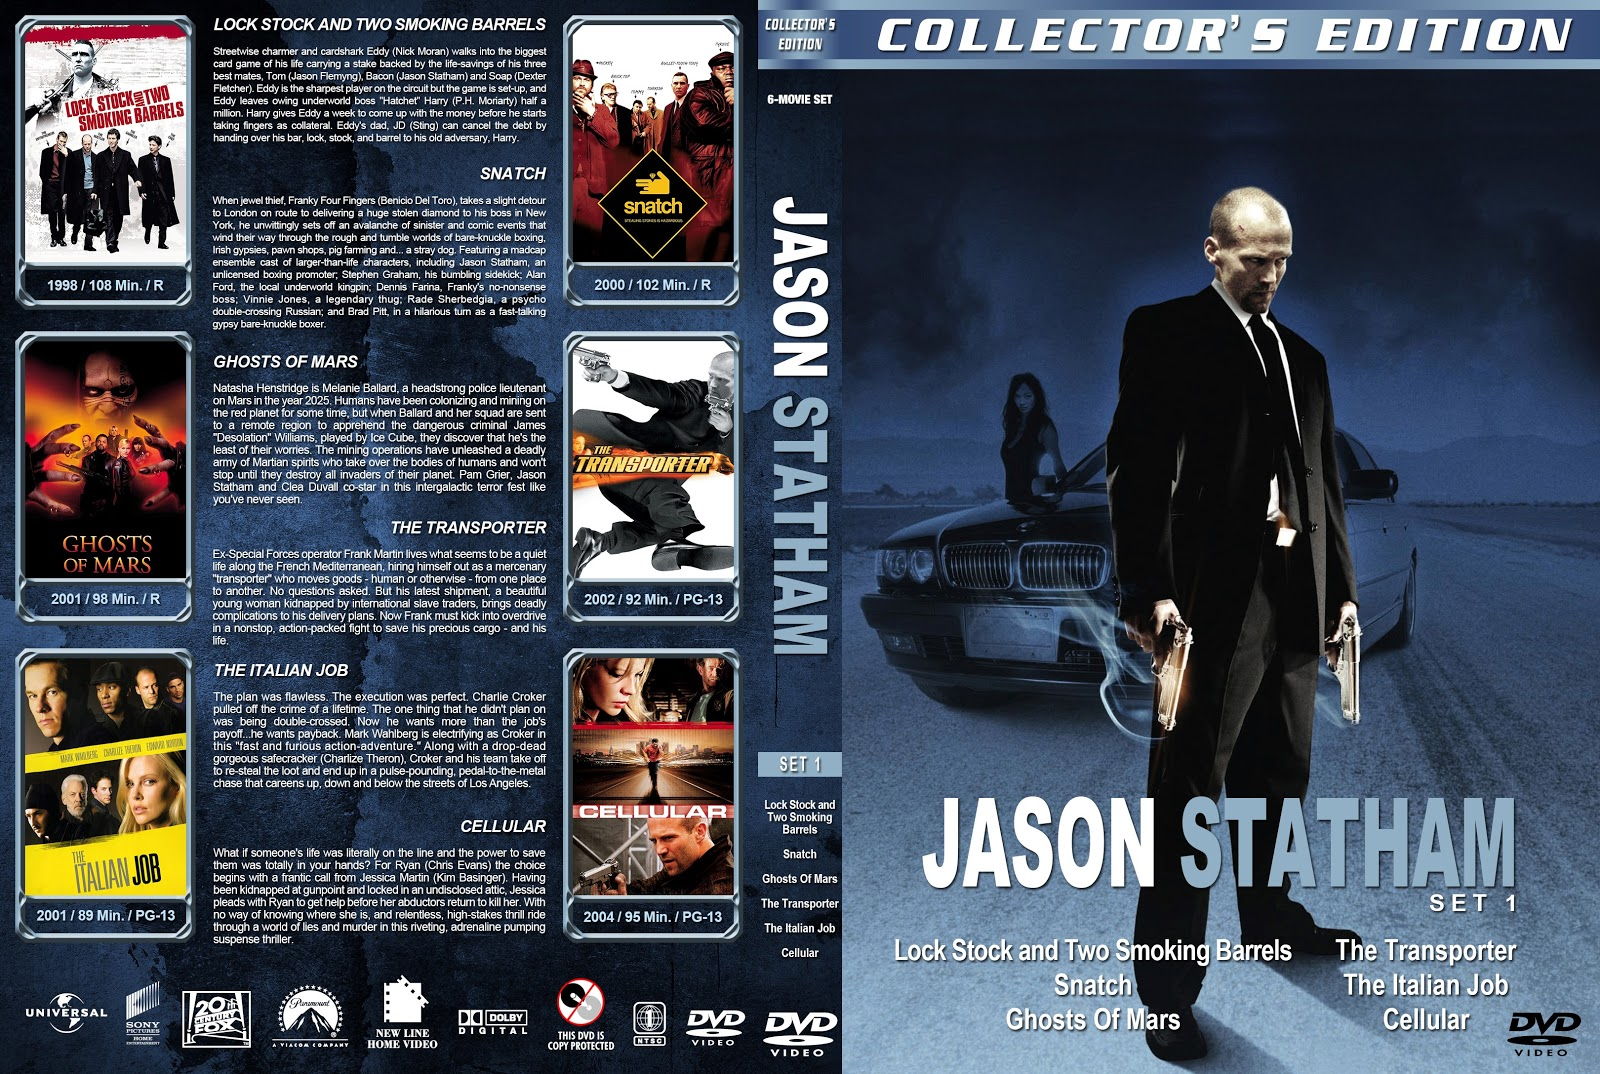 Jason Statham Collection Set 1-5 [Thin Spine] DVD Cover